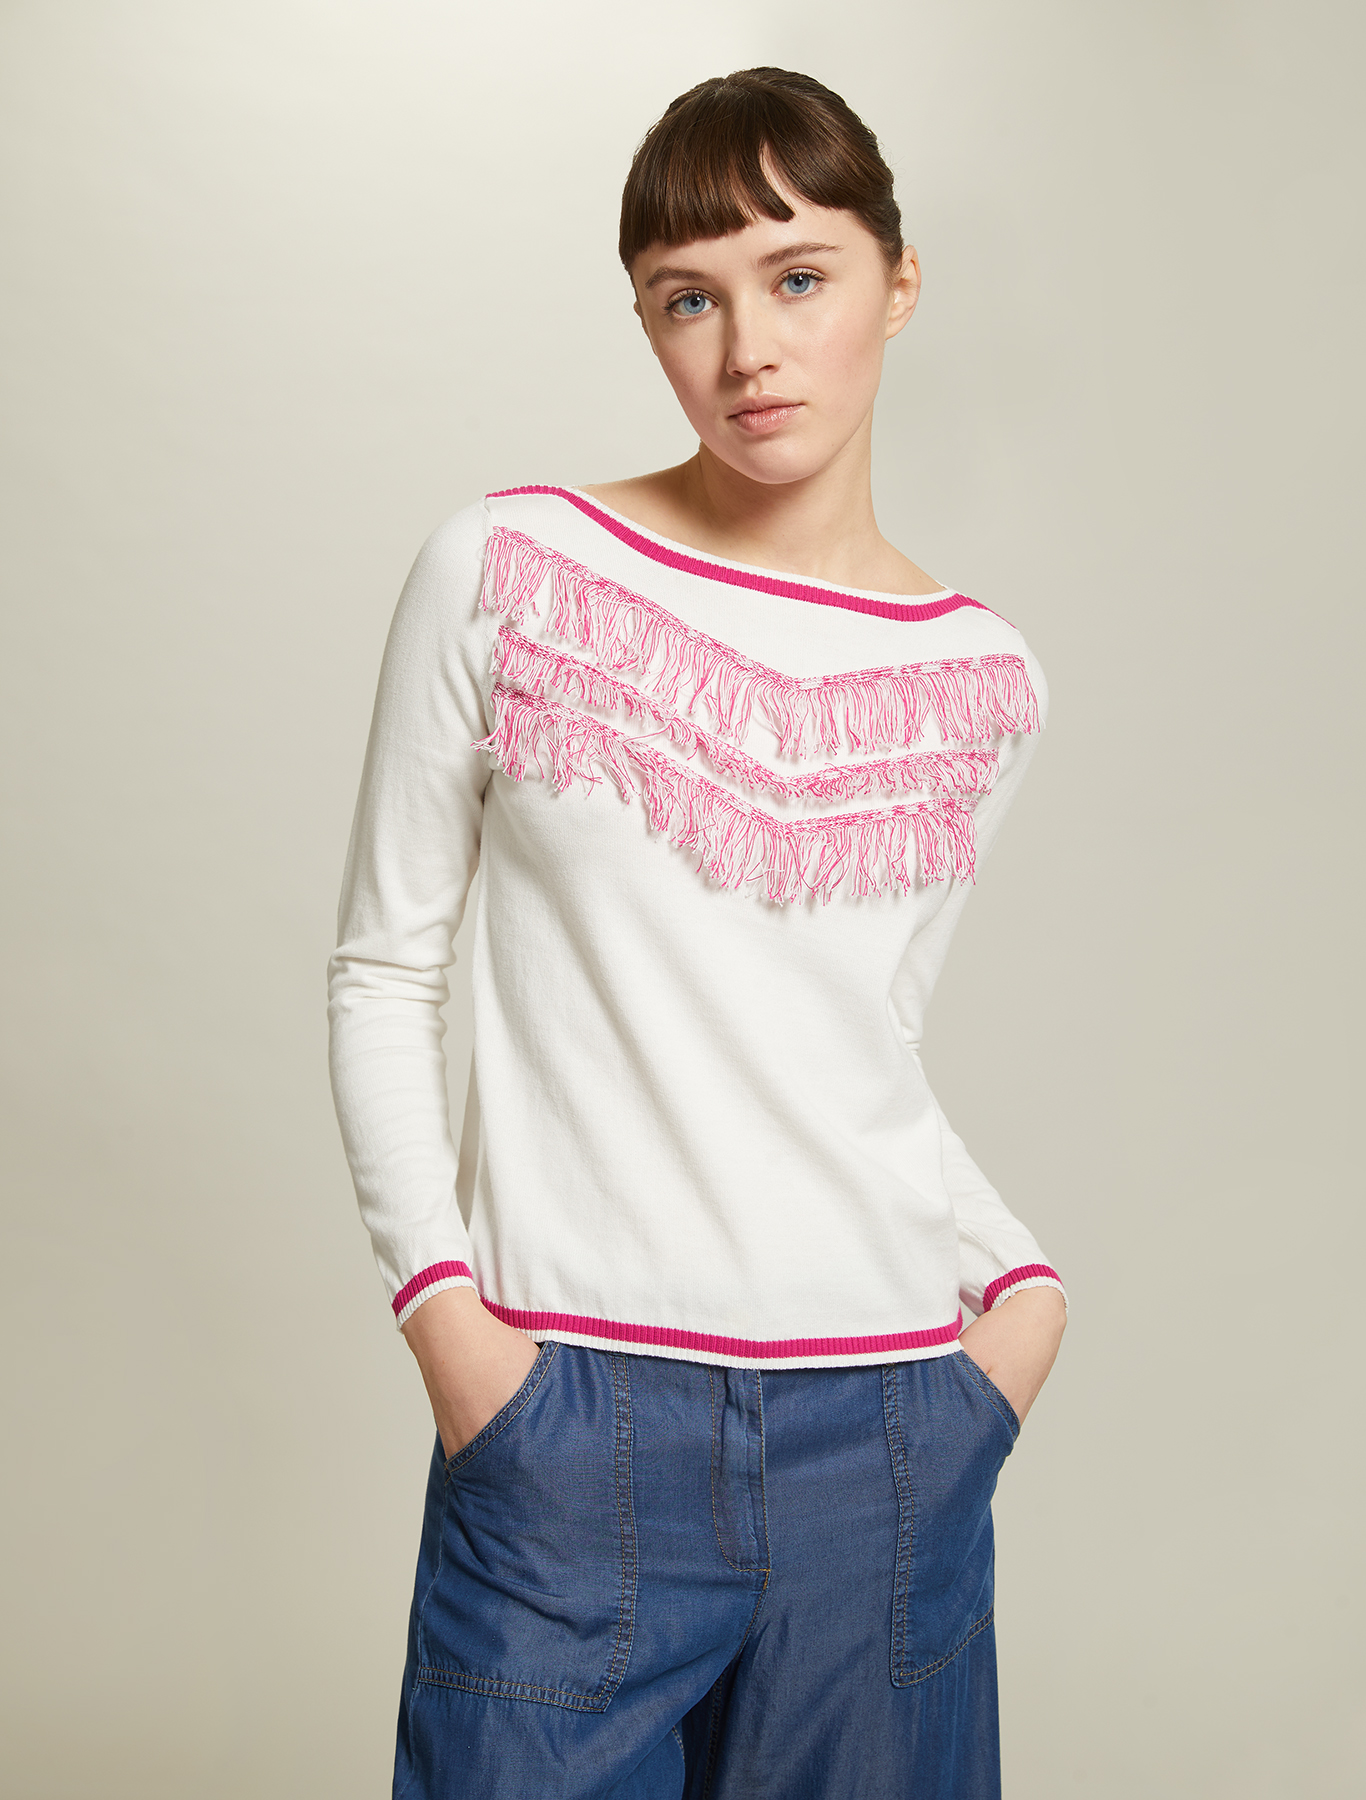 Cotton jumper with fringe - ivory - pennyblack